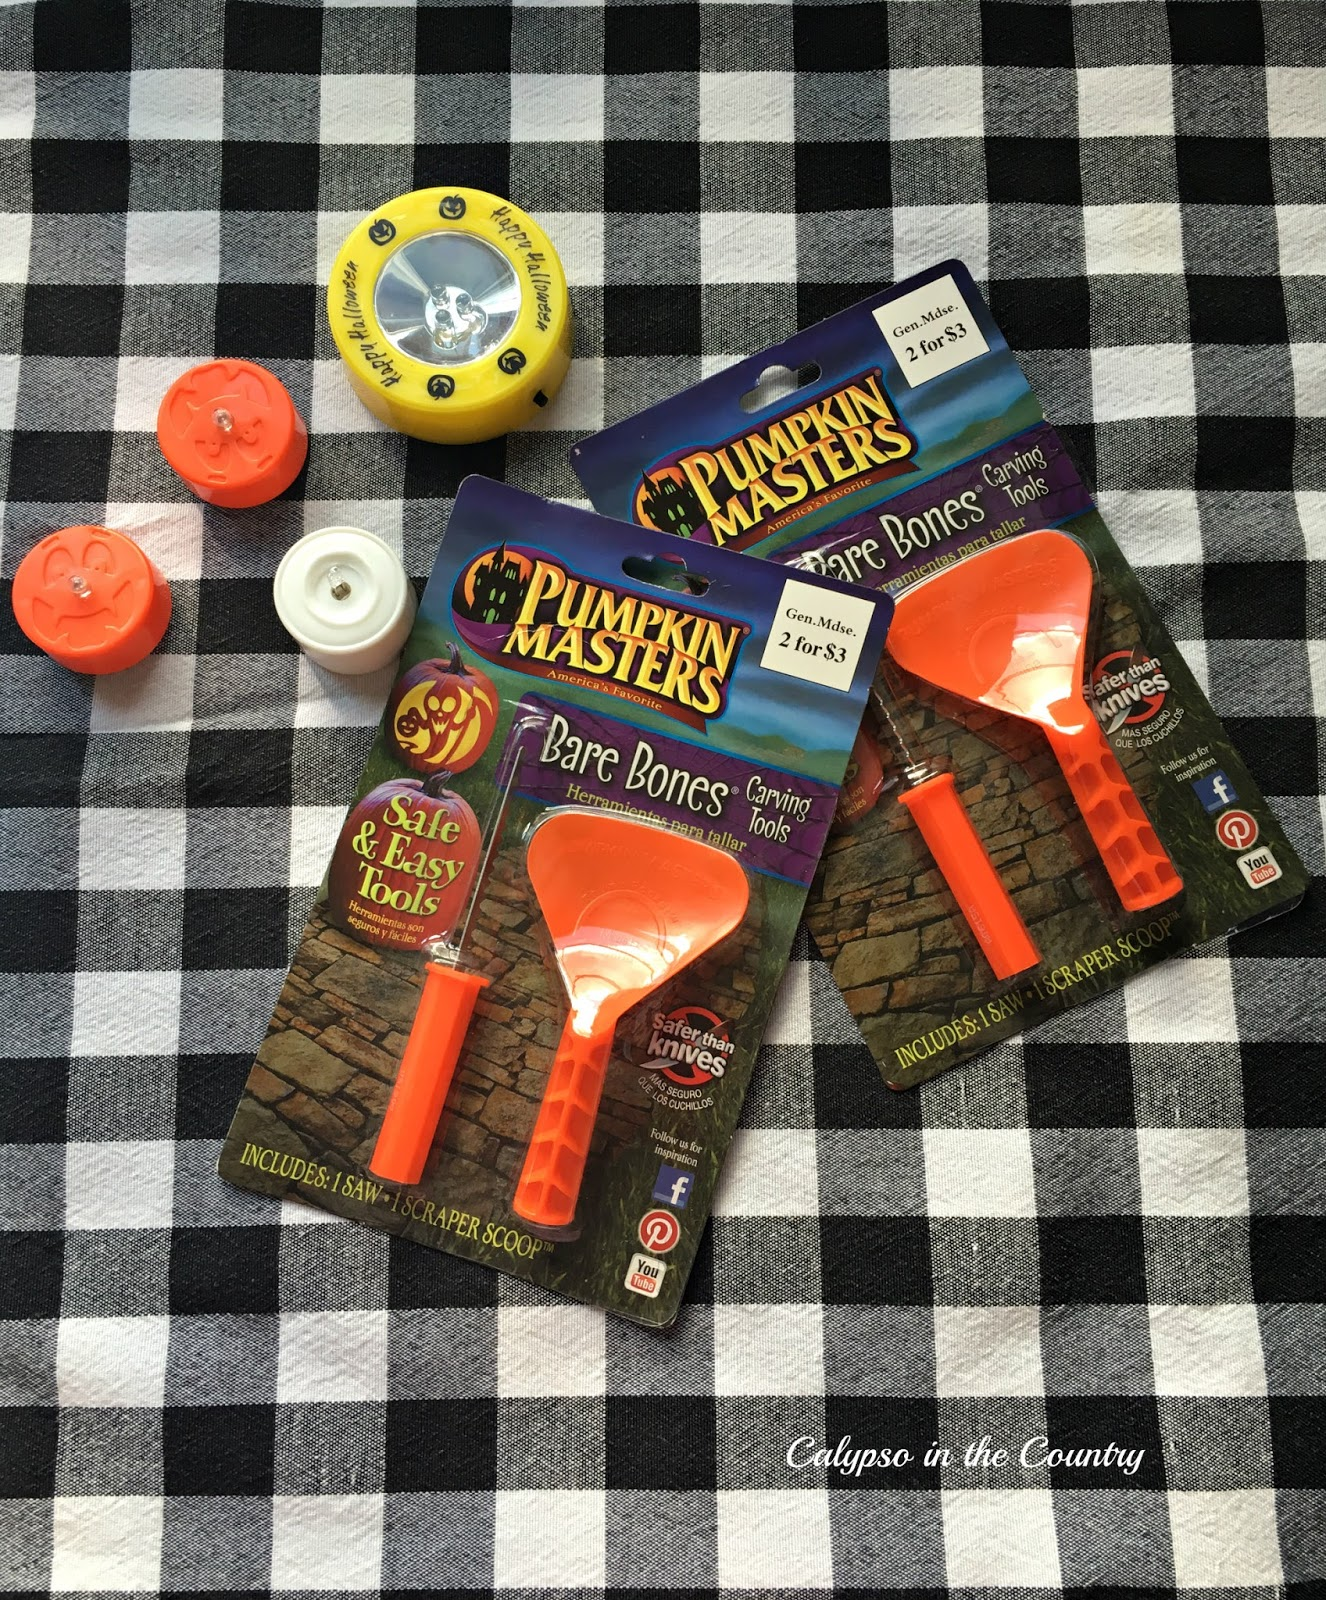 Fun Halloween Tradition - Pumpkin carving tools and accessories - Halloween goodie bag ideas